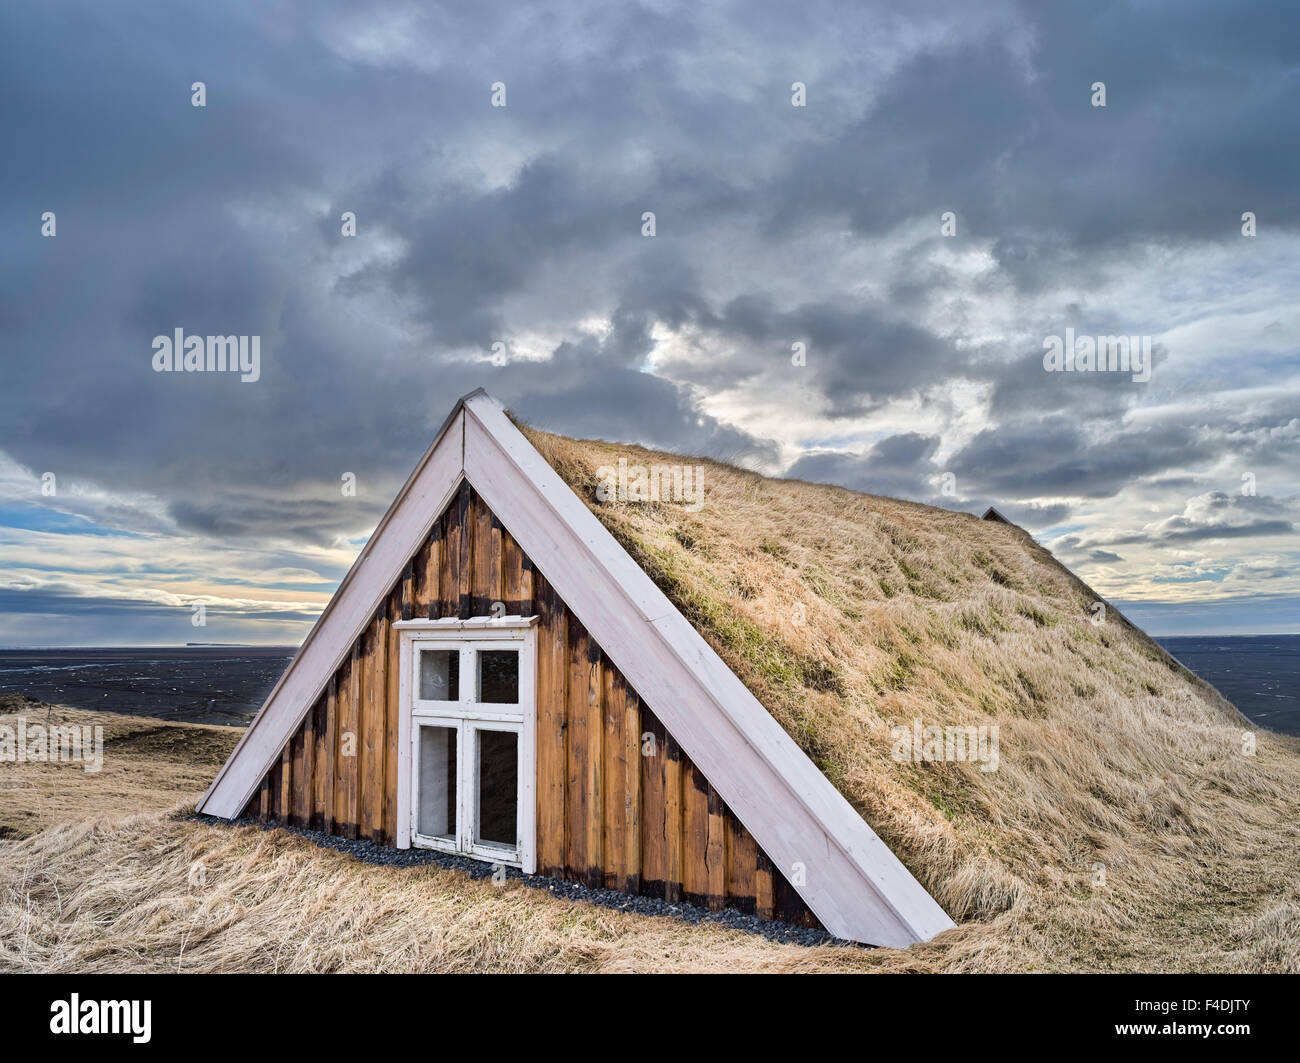 Stock Photo - The old farm Sel with traditional turf roofing now a Museum in Vatnajokull NP during winter. To protect it from the huge flooding of the ... & The old farm Sel with traditional turf roofing now a Museum in ... memphite.com